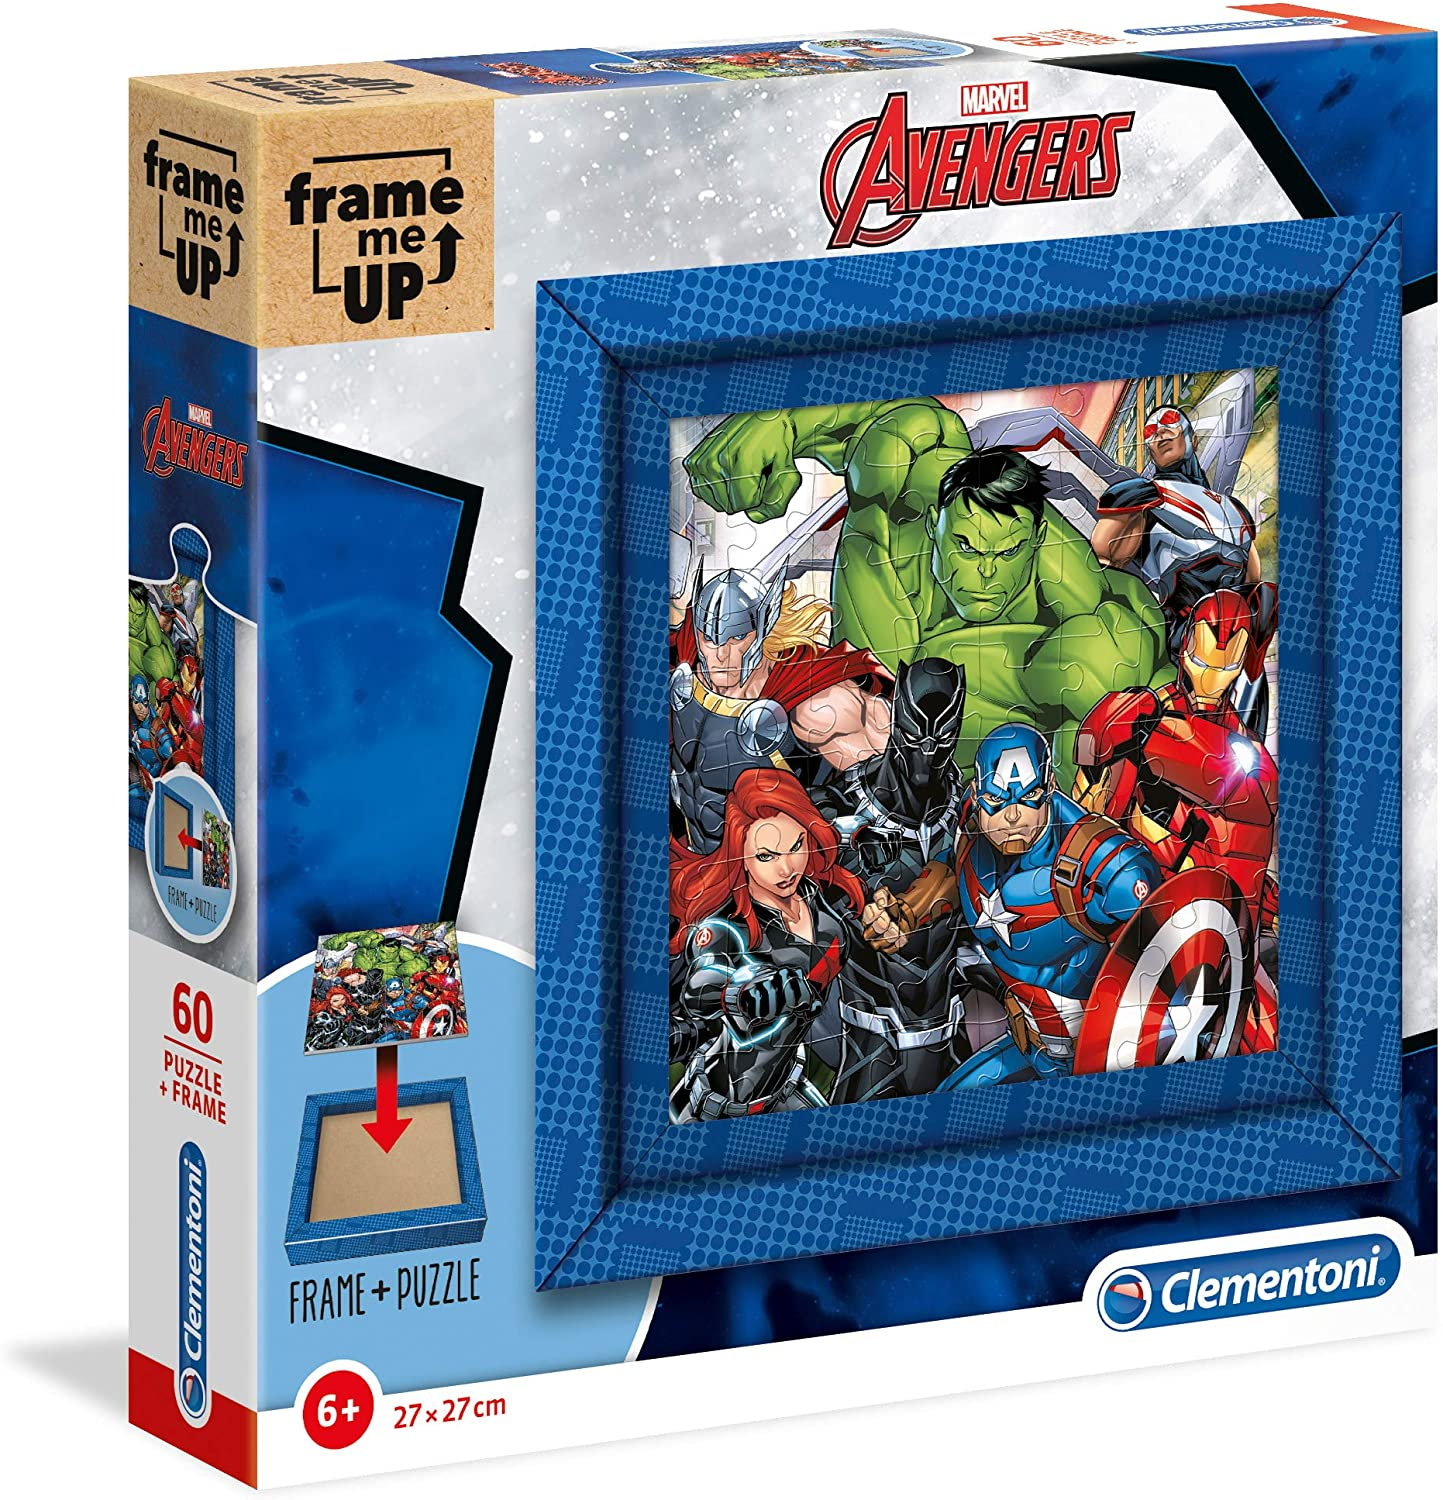 Puzzle Frame me Up - Avengers